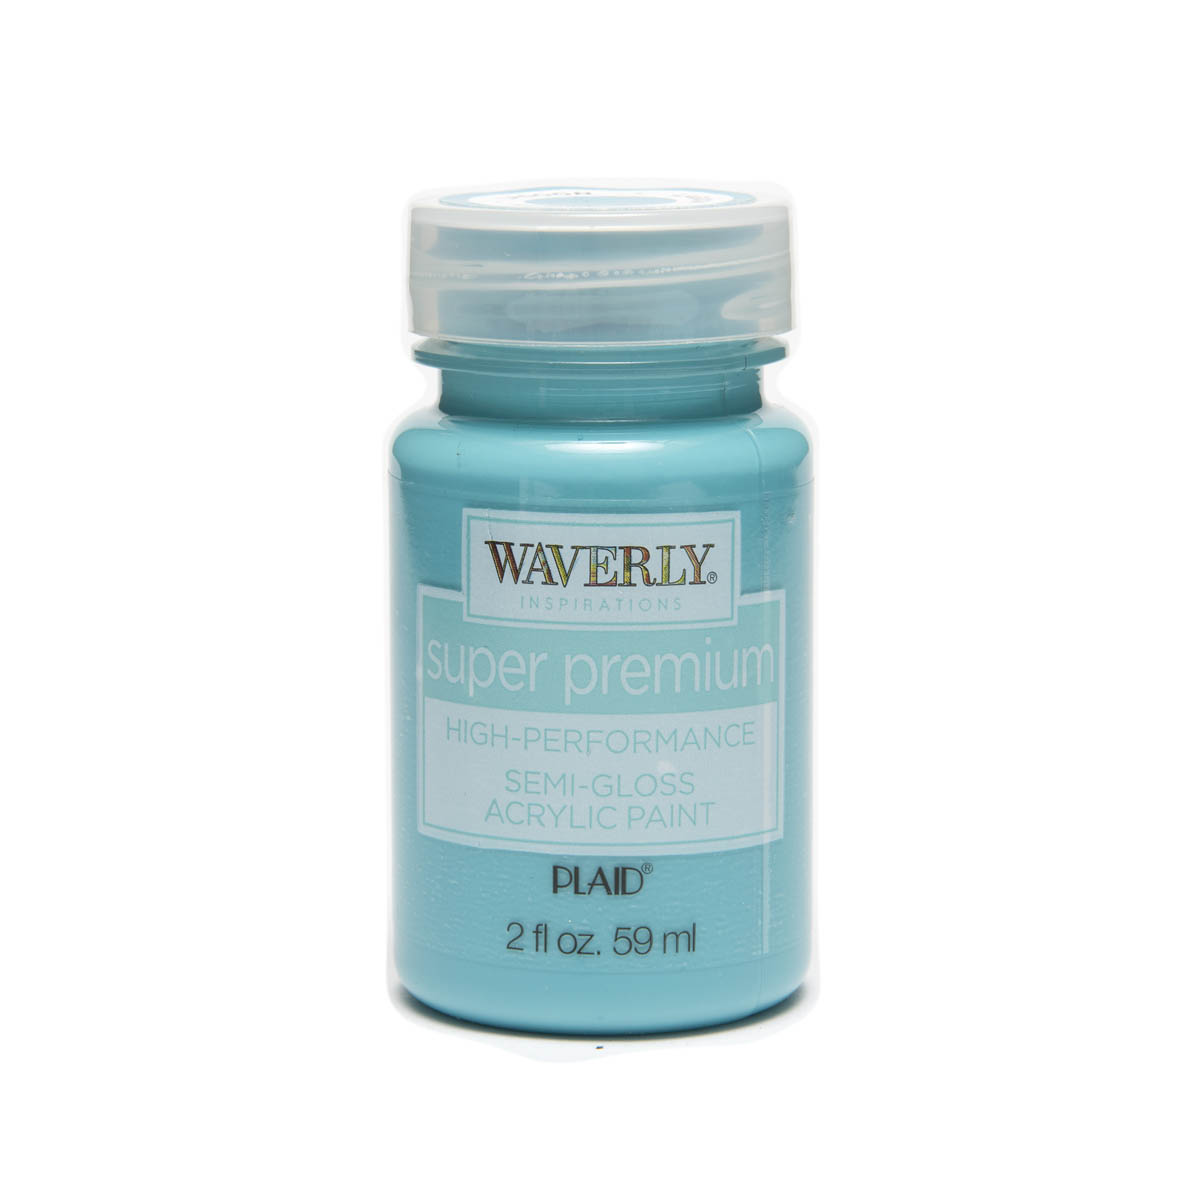 Waverly ® Inspirations Super Premium Semi-Gloss Acrylic Paint - Lagoon, 2 oz.